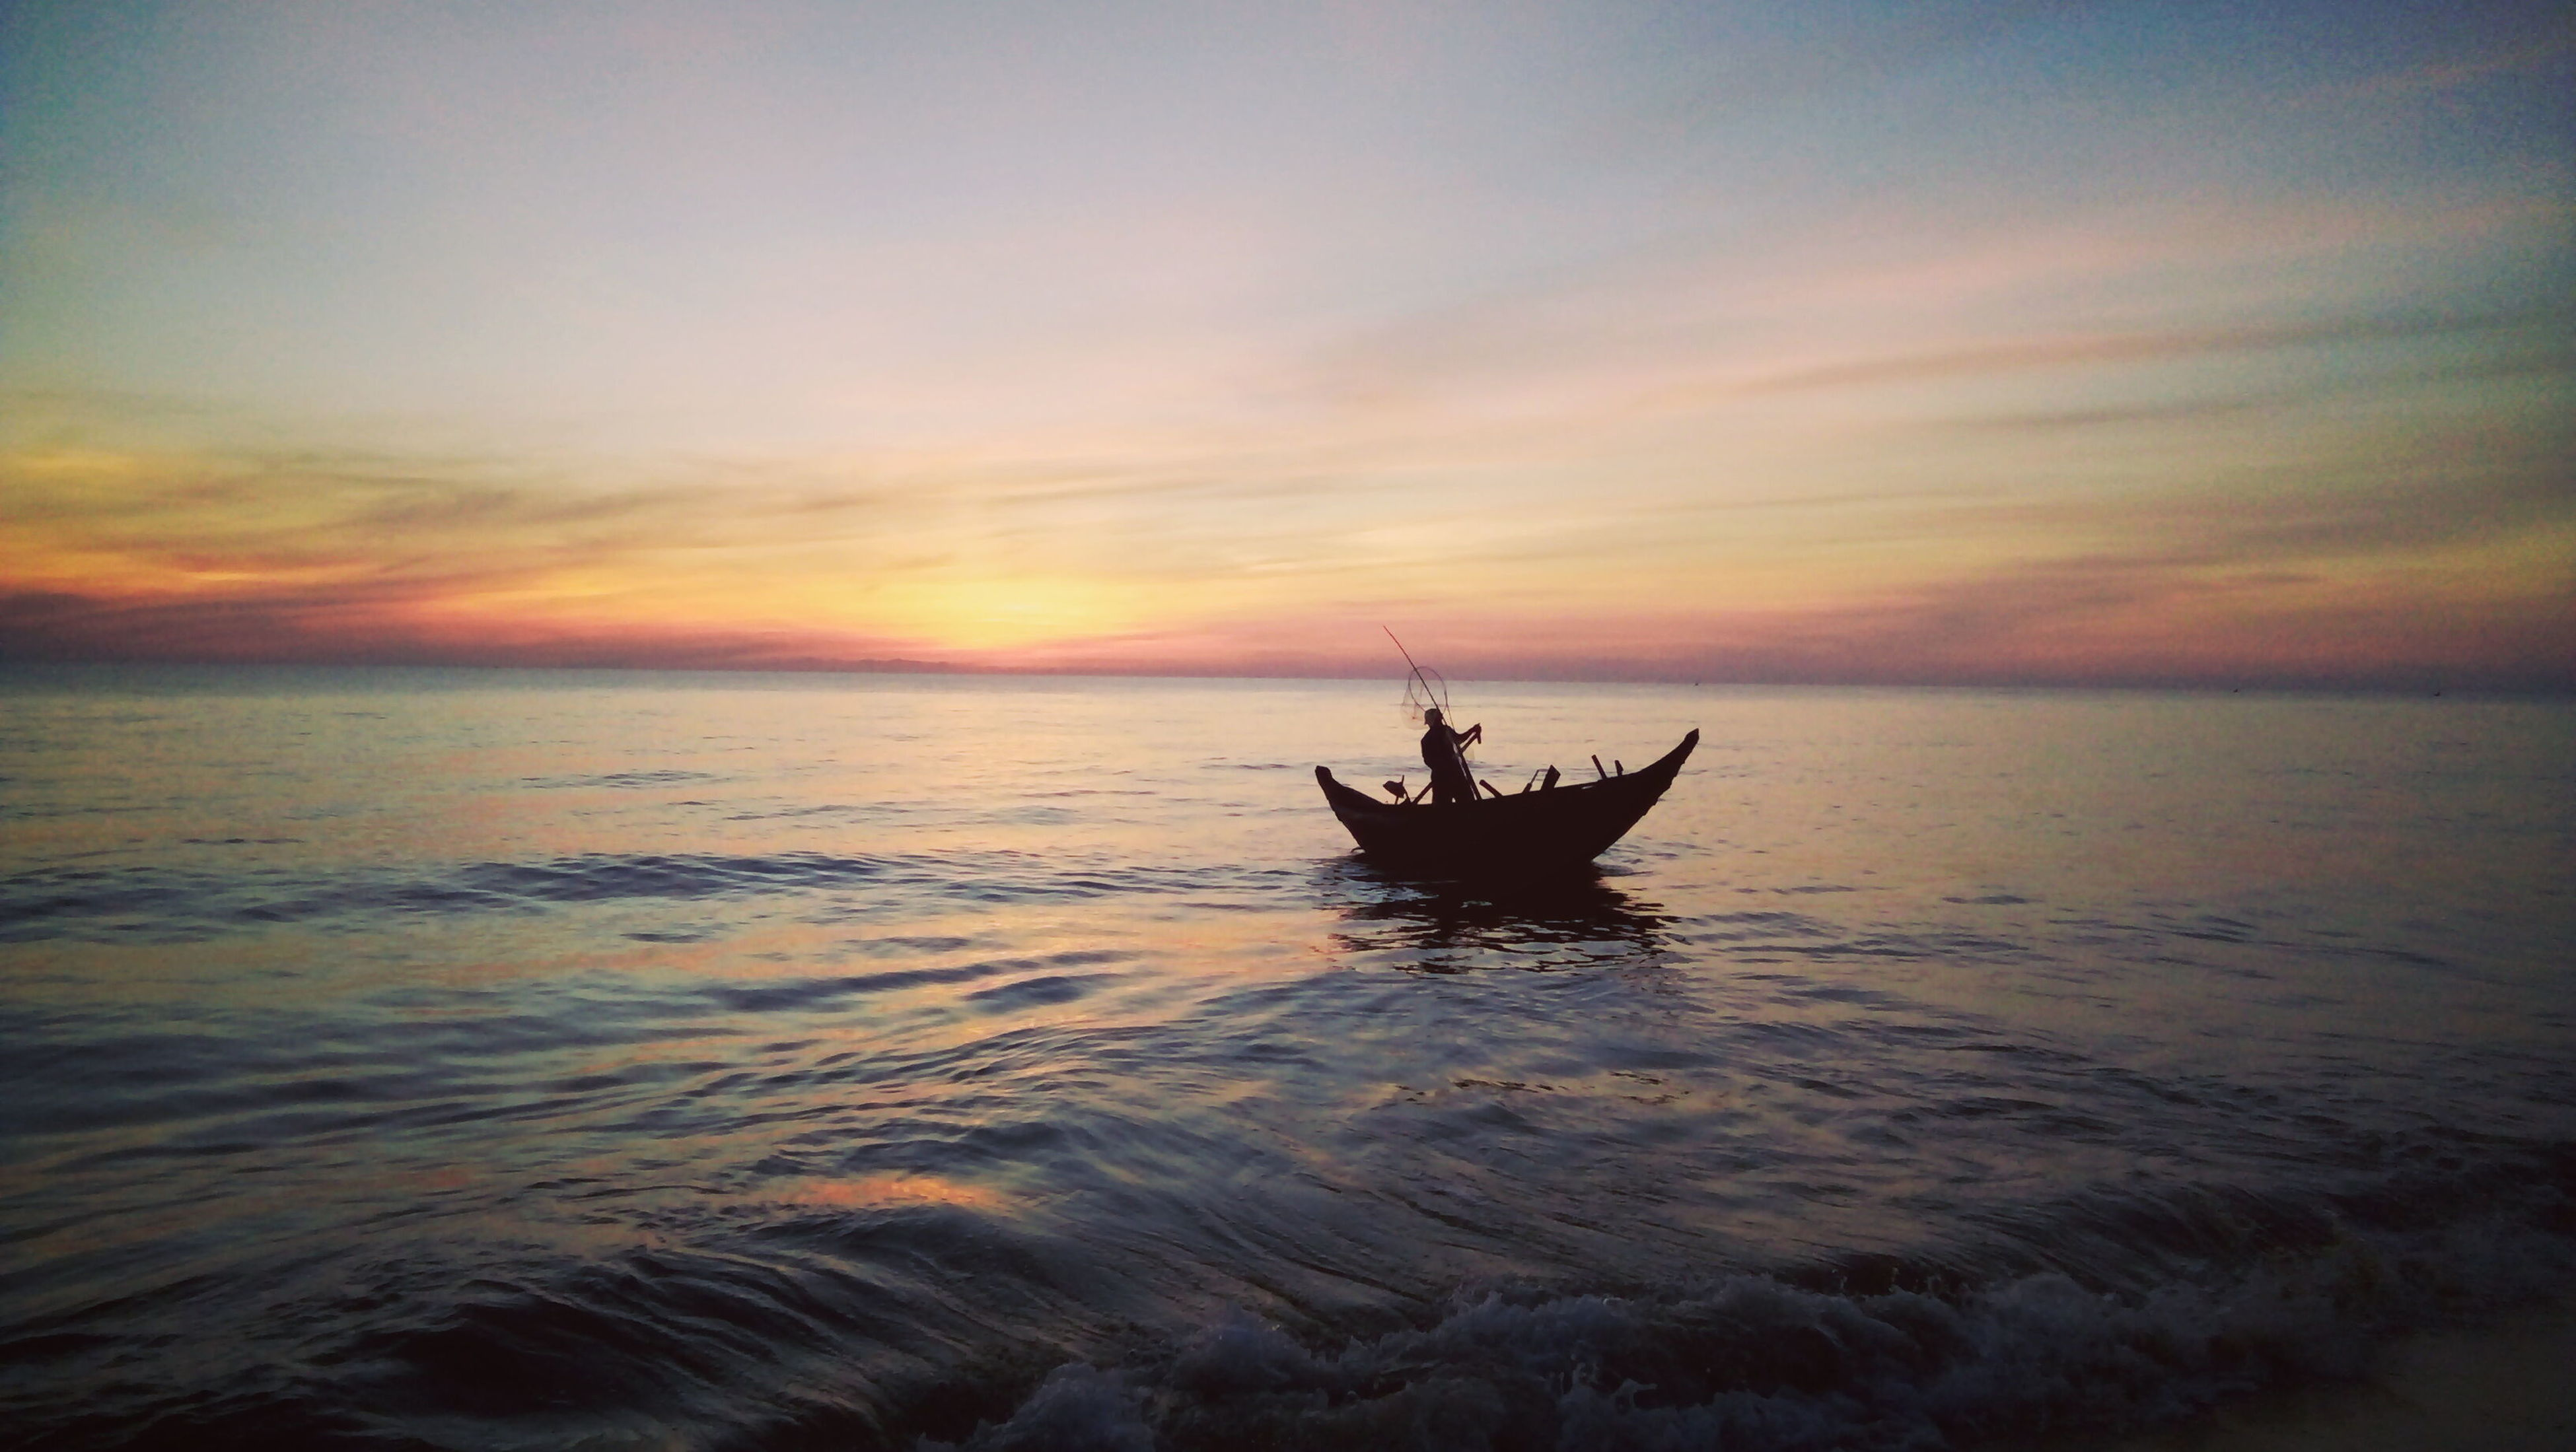 sunset, sea, horizon over water, water, silhouette, scenics, nature, waterfront, beauty in nature, sky, nautical vessel, outdoors, tranquility, tranquil scene, transportation, cloud - sky, men, one person, real people, day, people